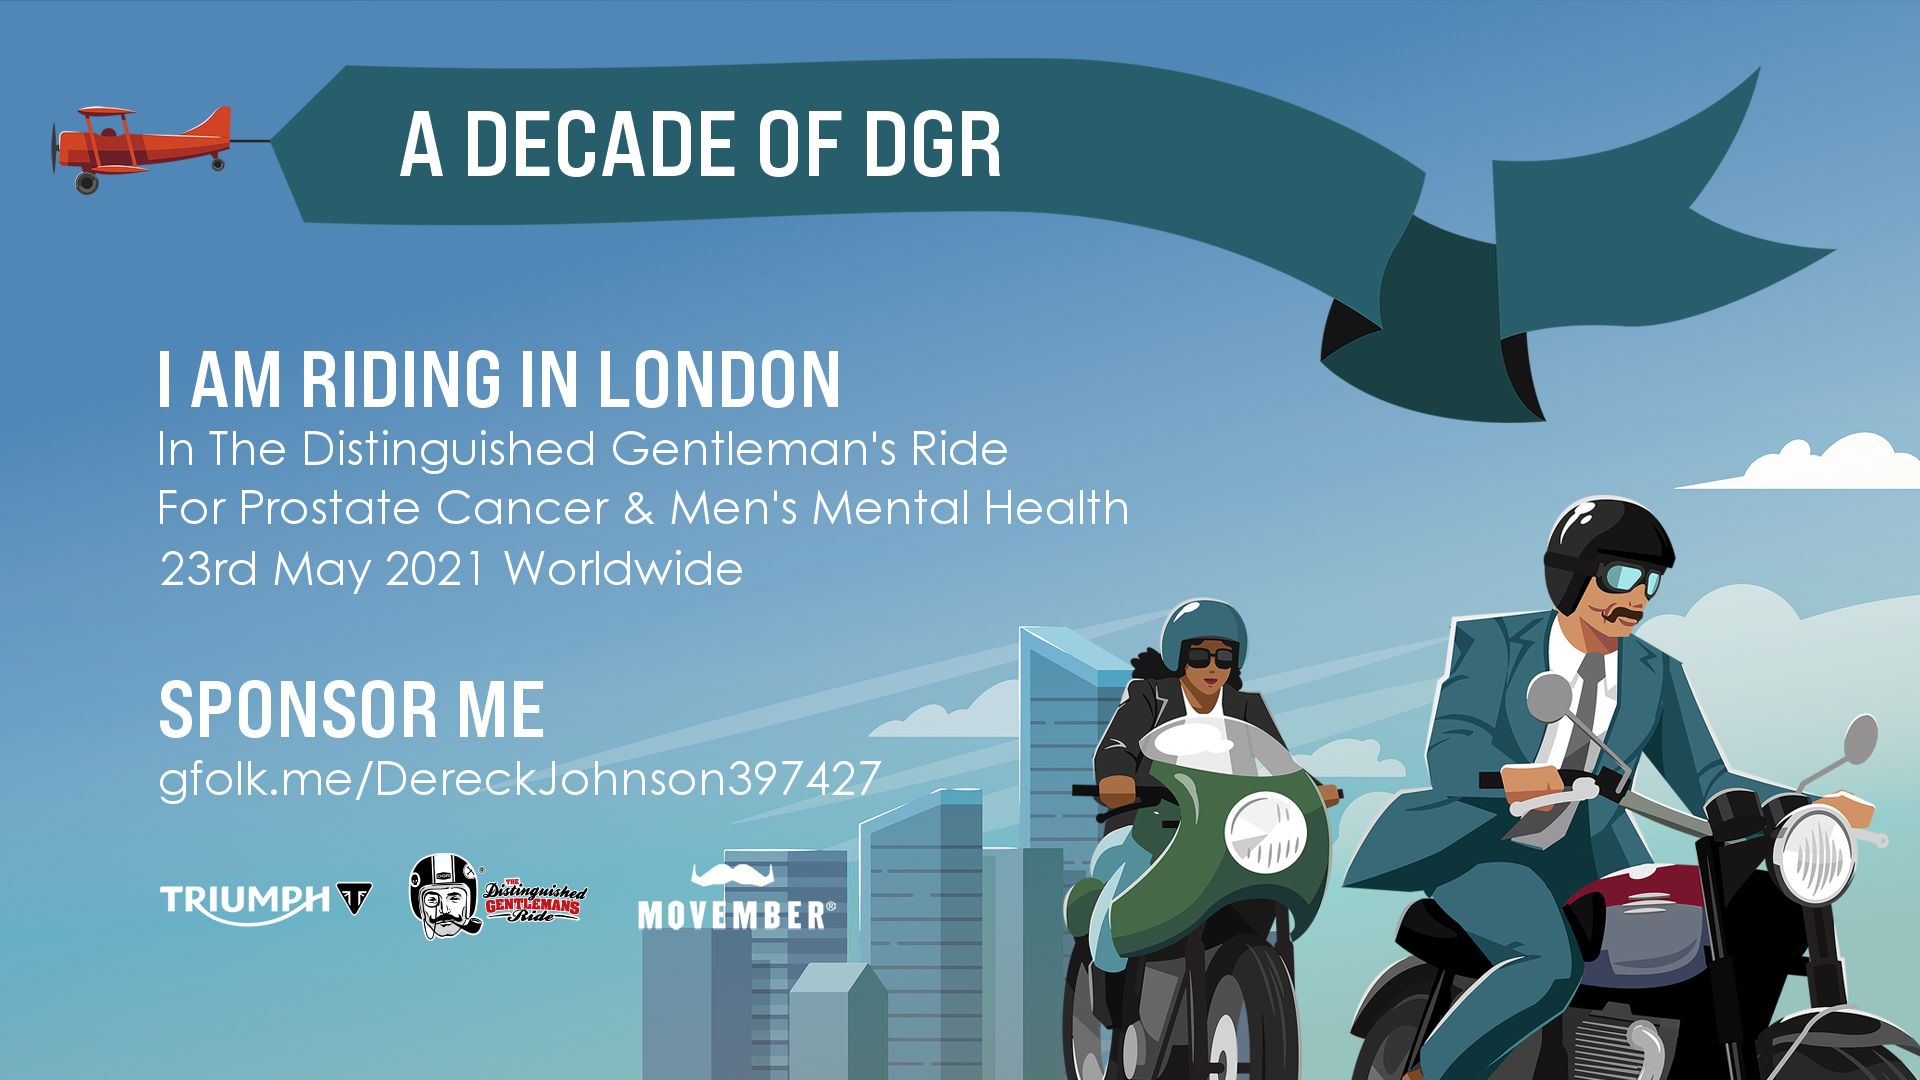 Distinguished Gentleman's Ride charity sponsorship image, please donate to help raise funds for prostate cancer and men's mental health